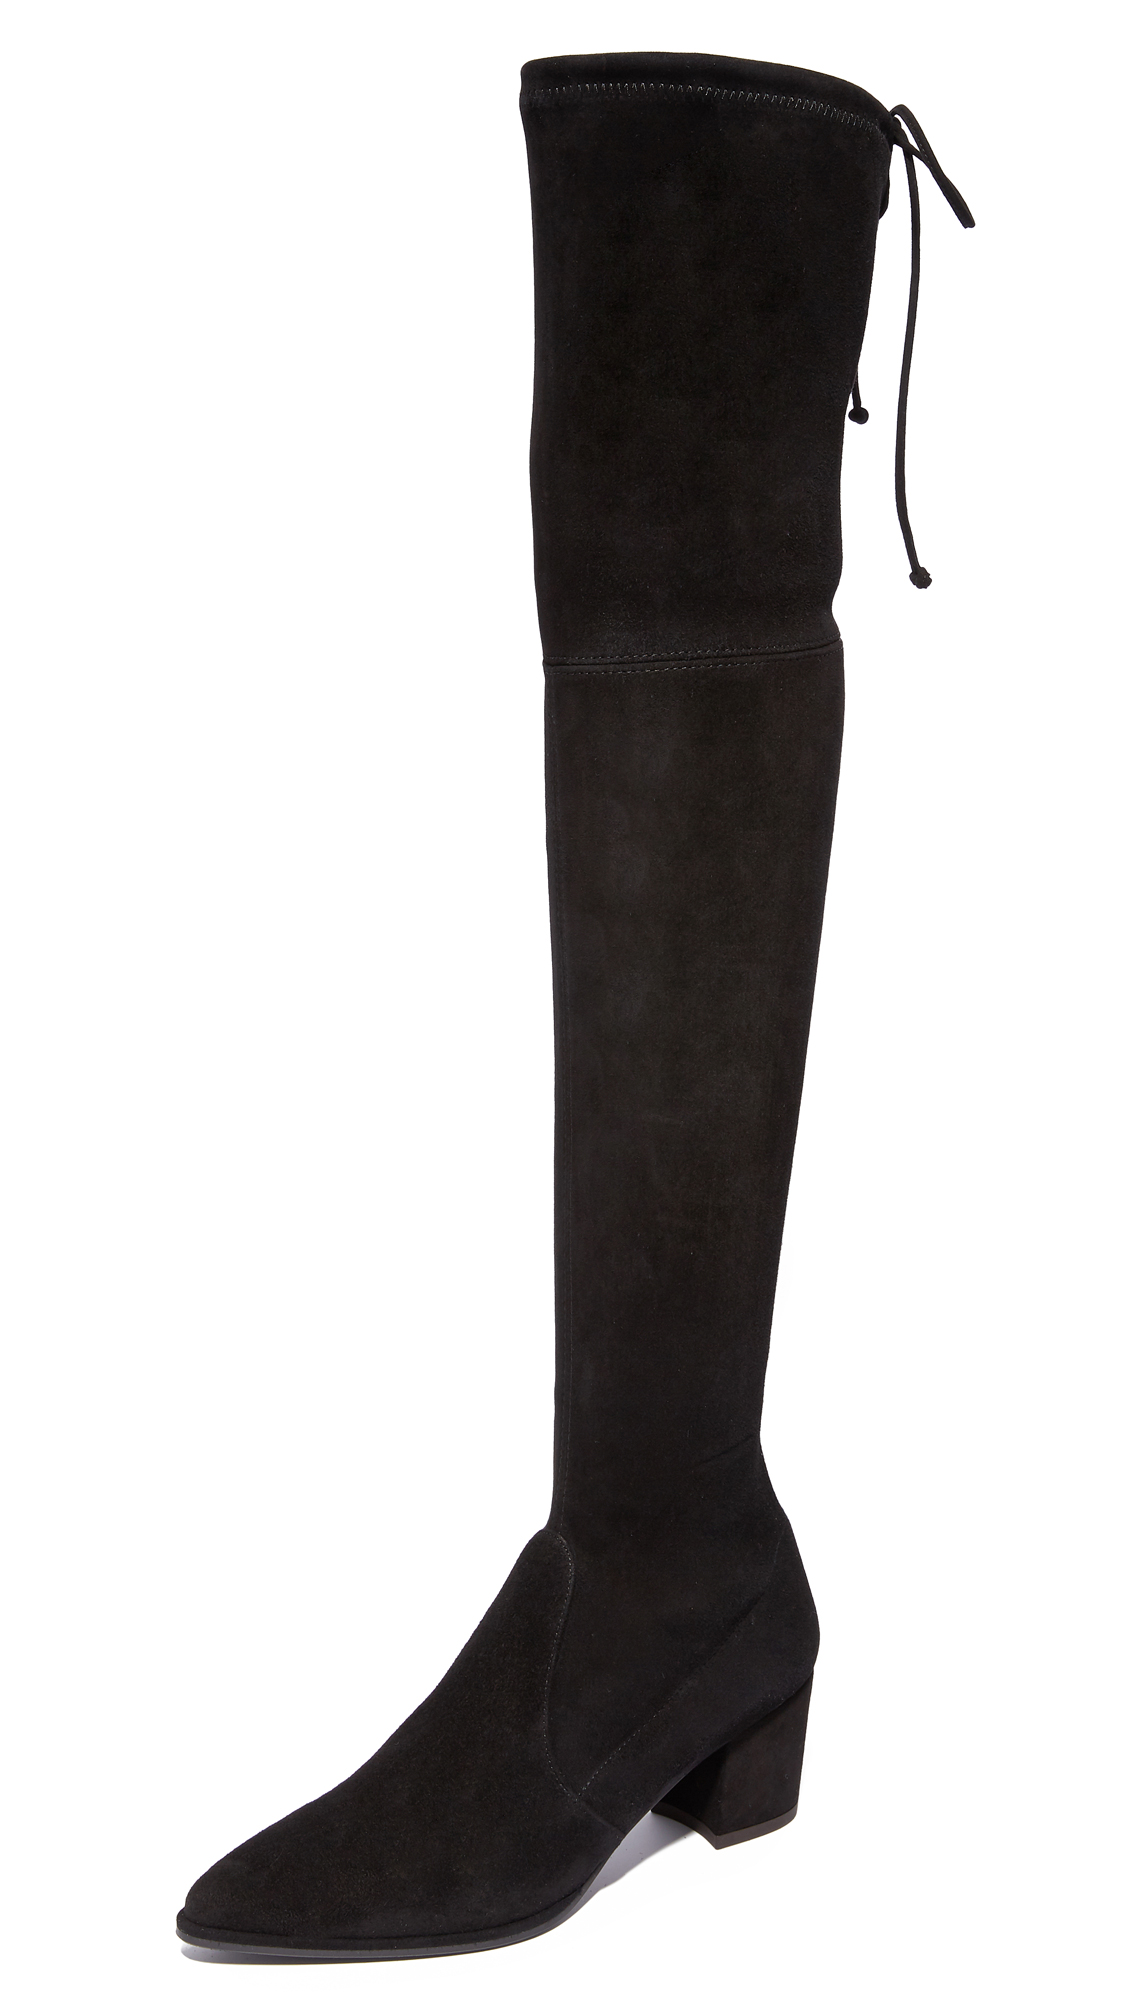 Stuart Weitzman Thighland Over the Knee Boots - Black